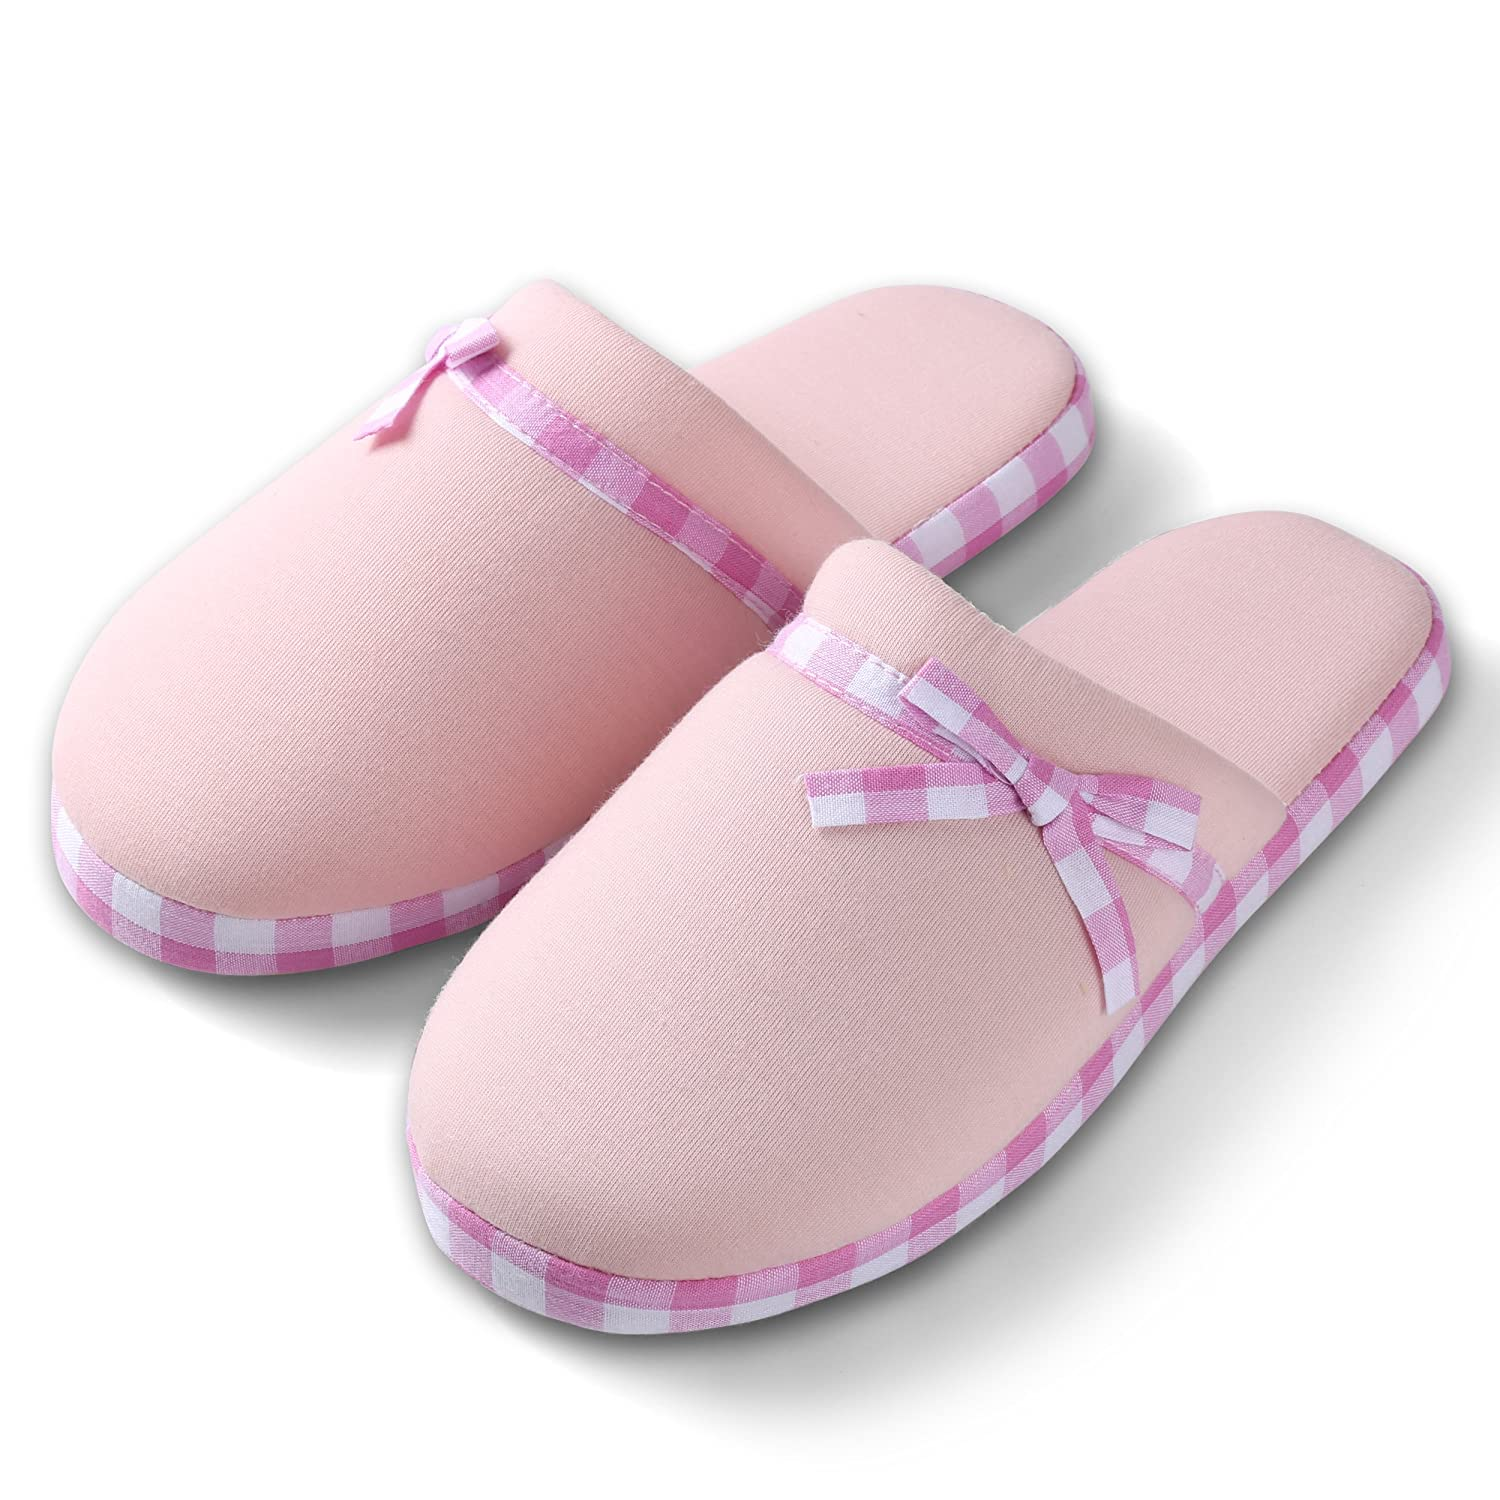 Roxie Womens Checker Slide Cute Light Pink Cozy Lazy Lounging Soft Bedroom House Slippers